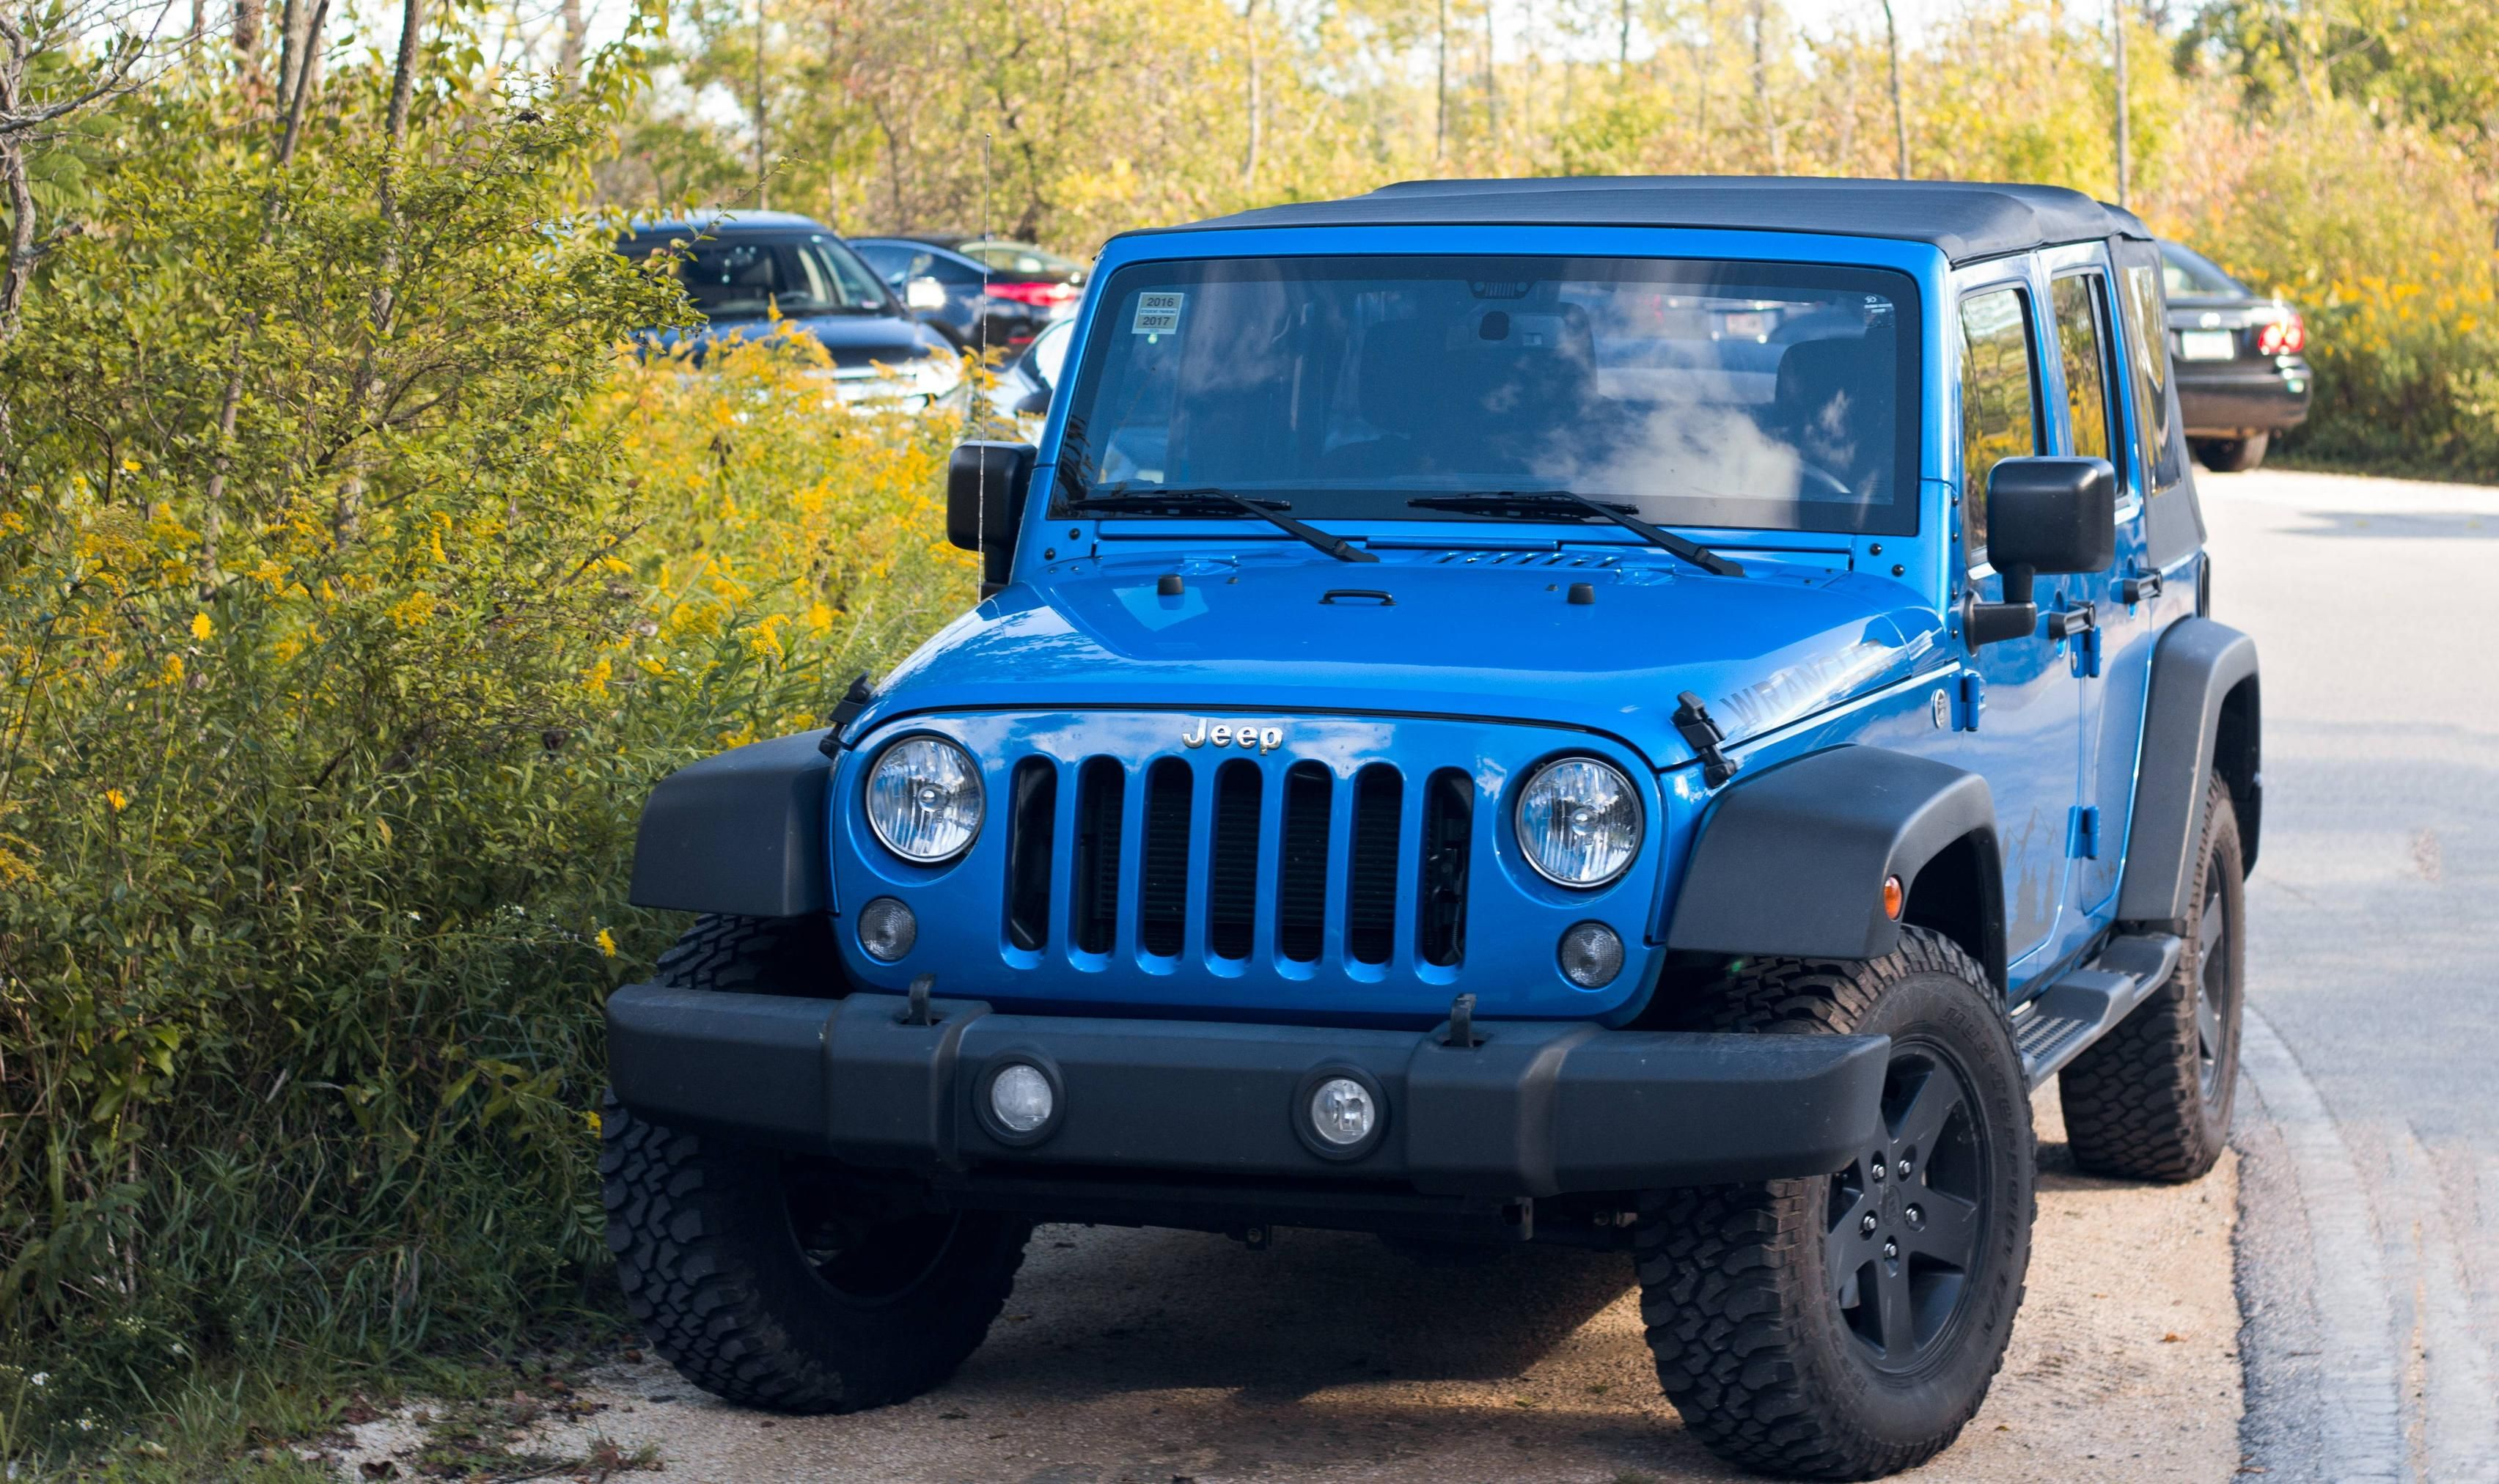 Not Mine But I Figured You Guys Would Appreciate This Bright Blue Jeep I Found Jeep Jeeplife Wrangler Jeeps Cherokee Jeepmafia Blue Jeep Jeep Jeep Life